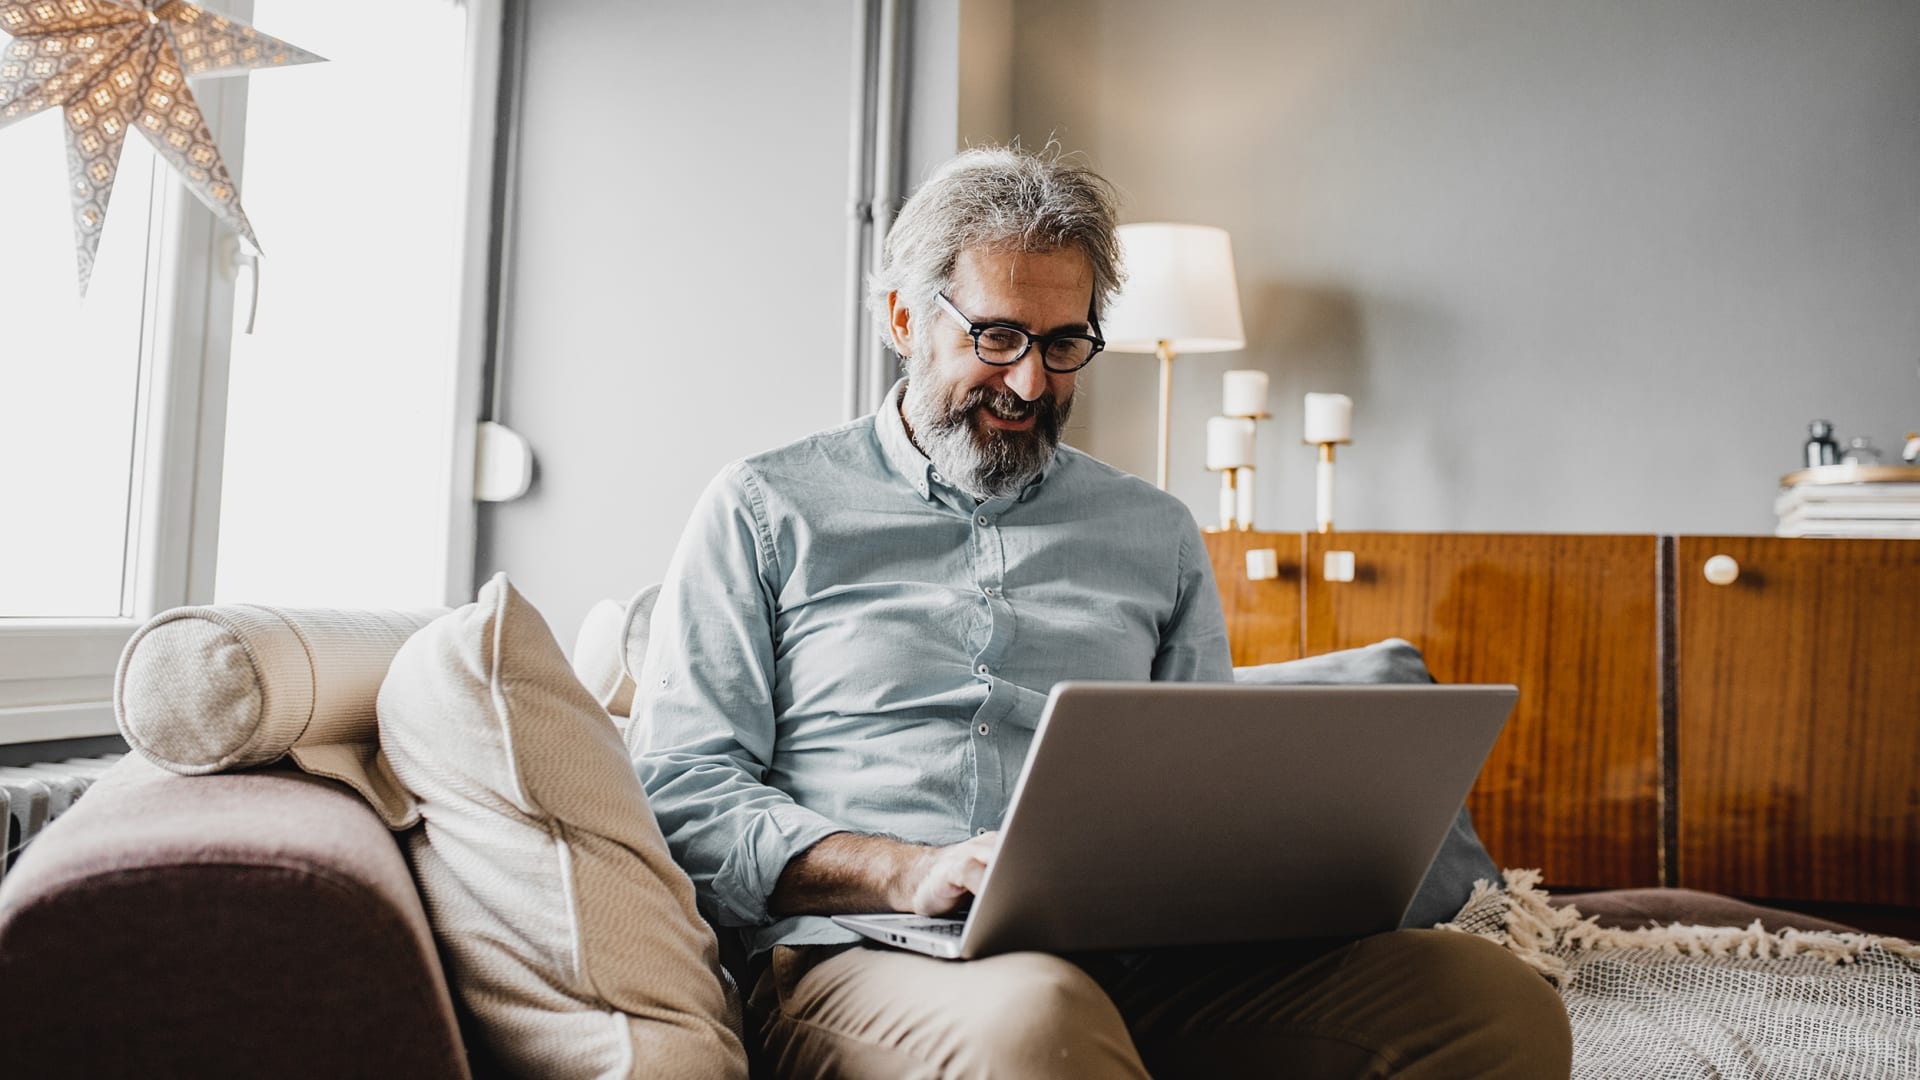 5 Remote Work Practices for Better Work-Life Balance